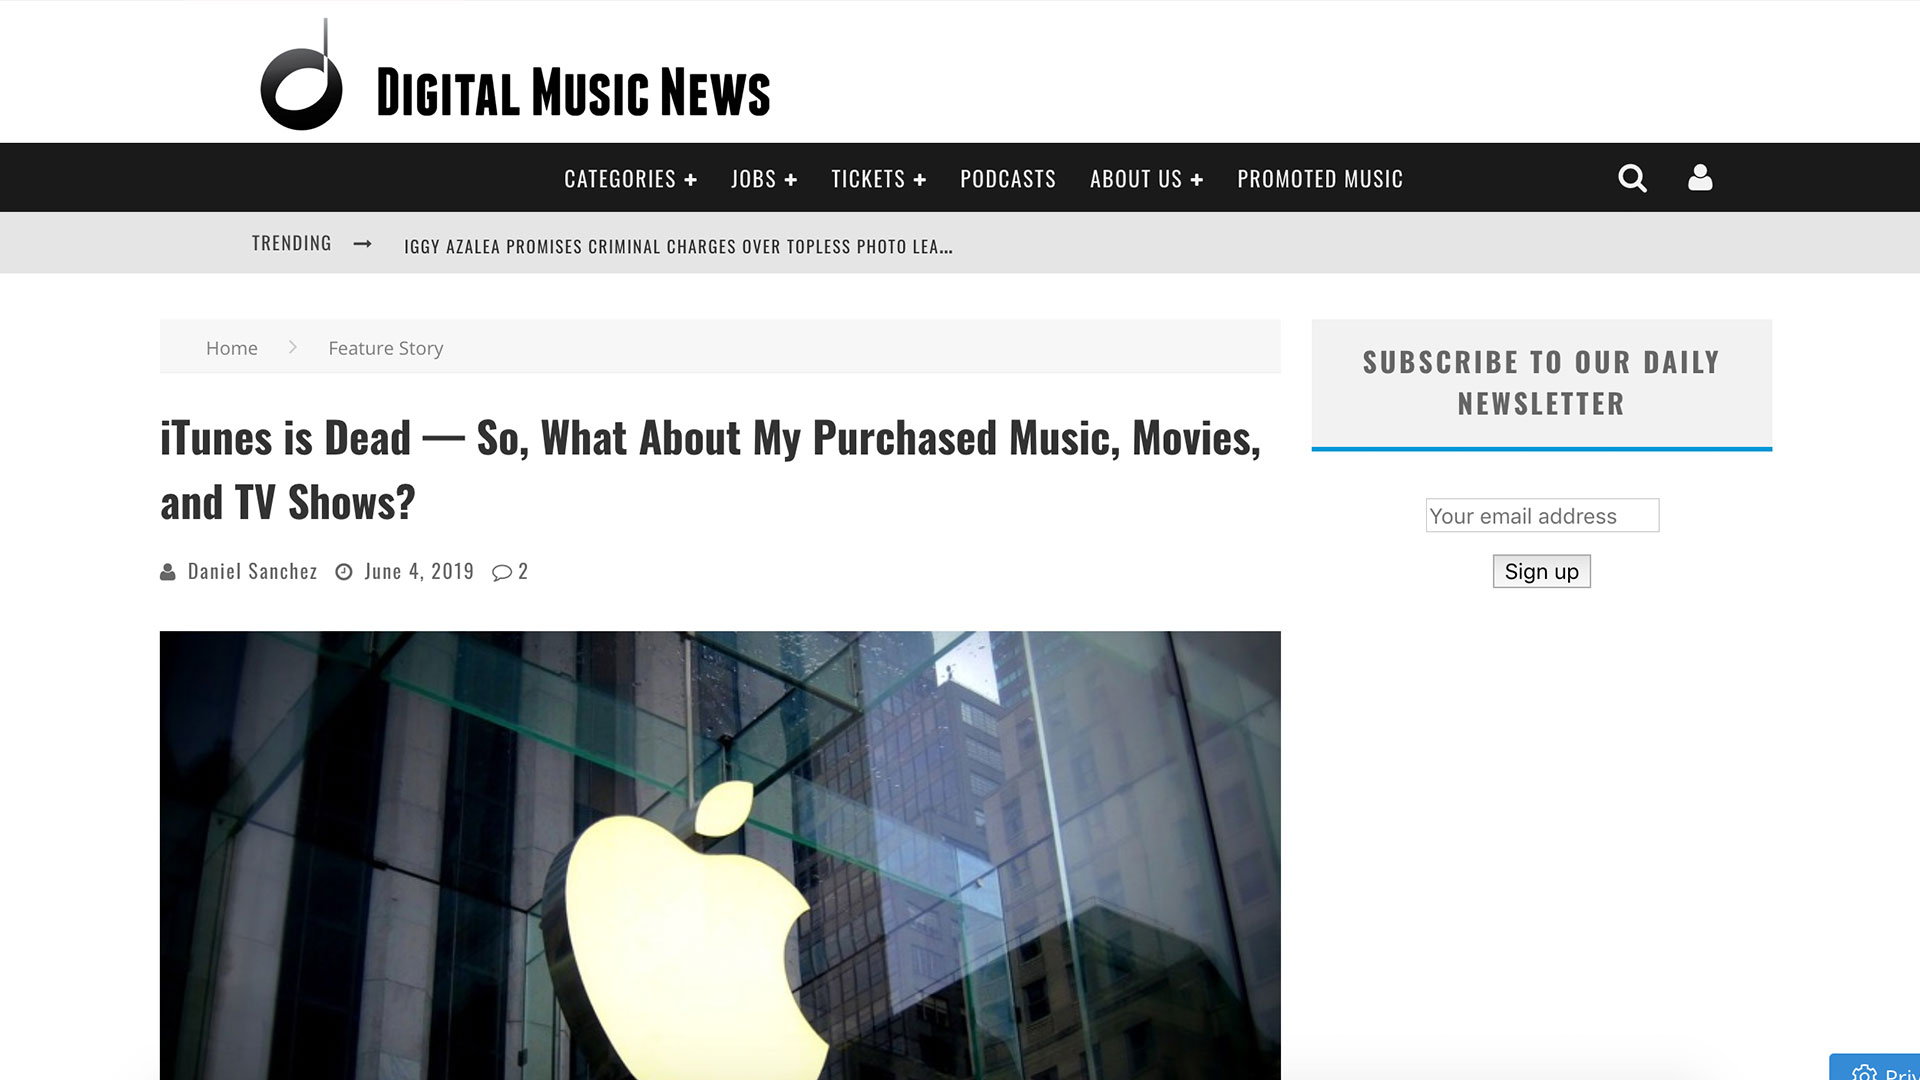 Fairness Rocks News iTunes is Dead — So, What About My Purchased Music, Movies, and TV Shows?